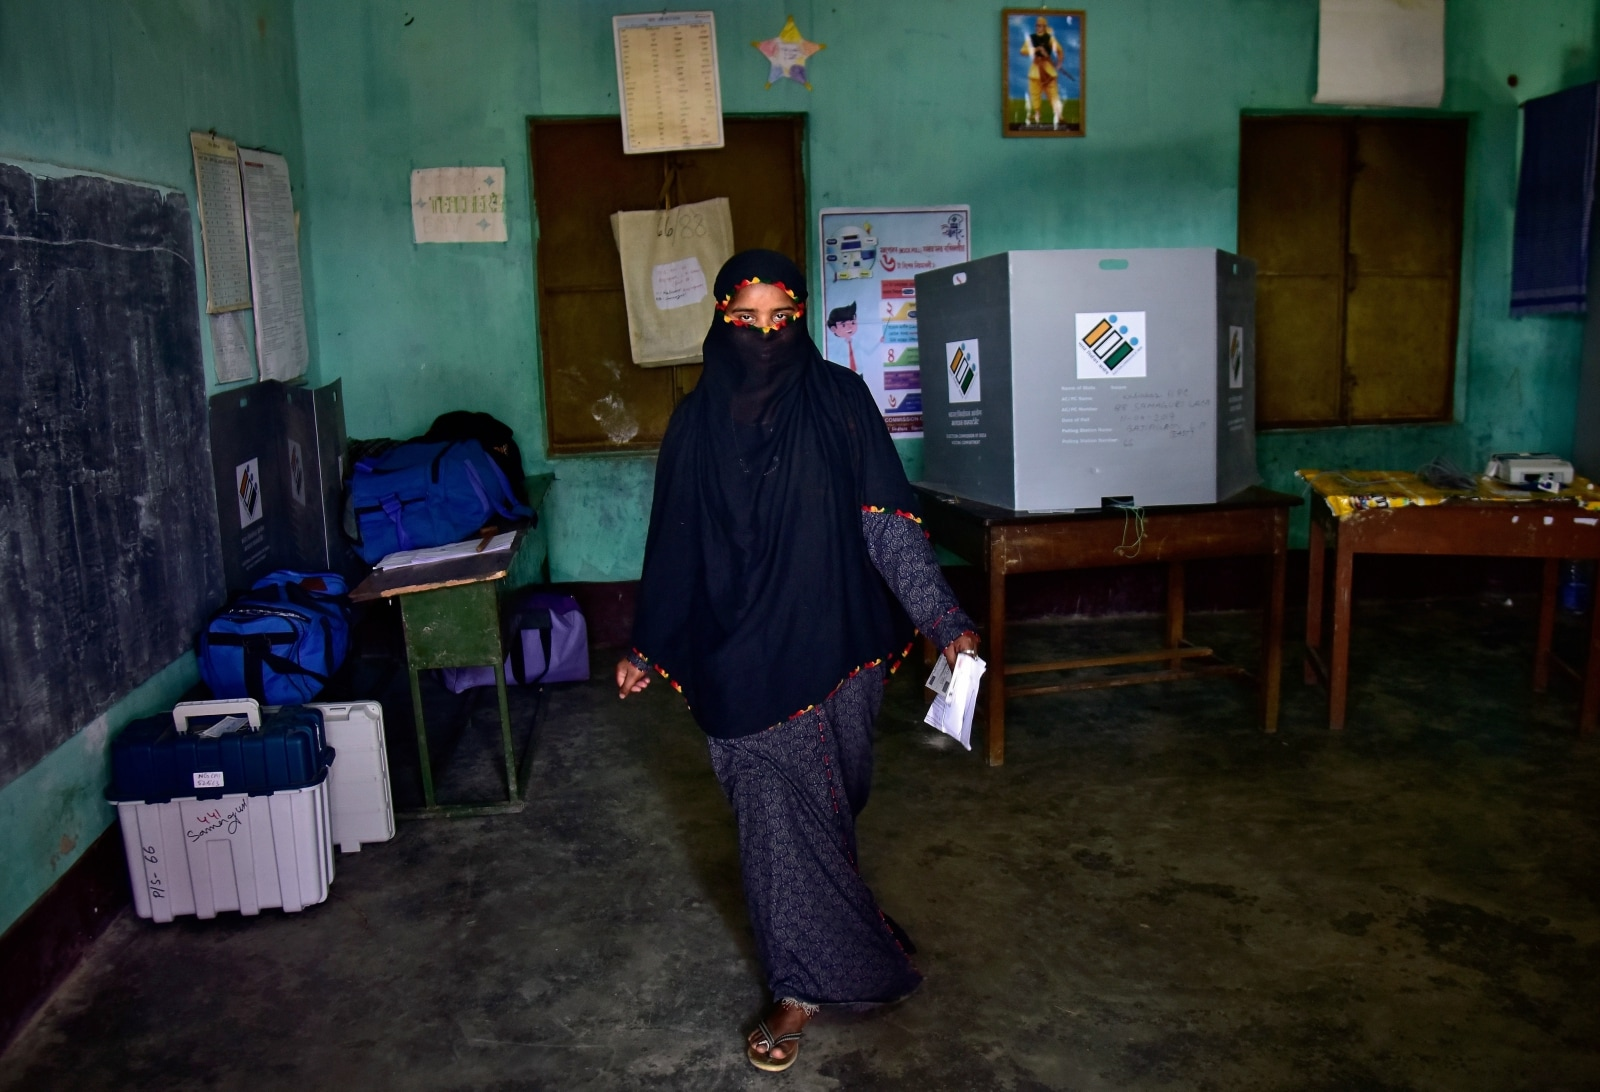 A veiled woman leaves after casting her vote at a polling station during the first phase of general election in Nagaon district in the northeastern state of Assam, India, April 11, 2019. REUTERS/Anuwar Hazarika